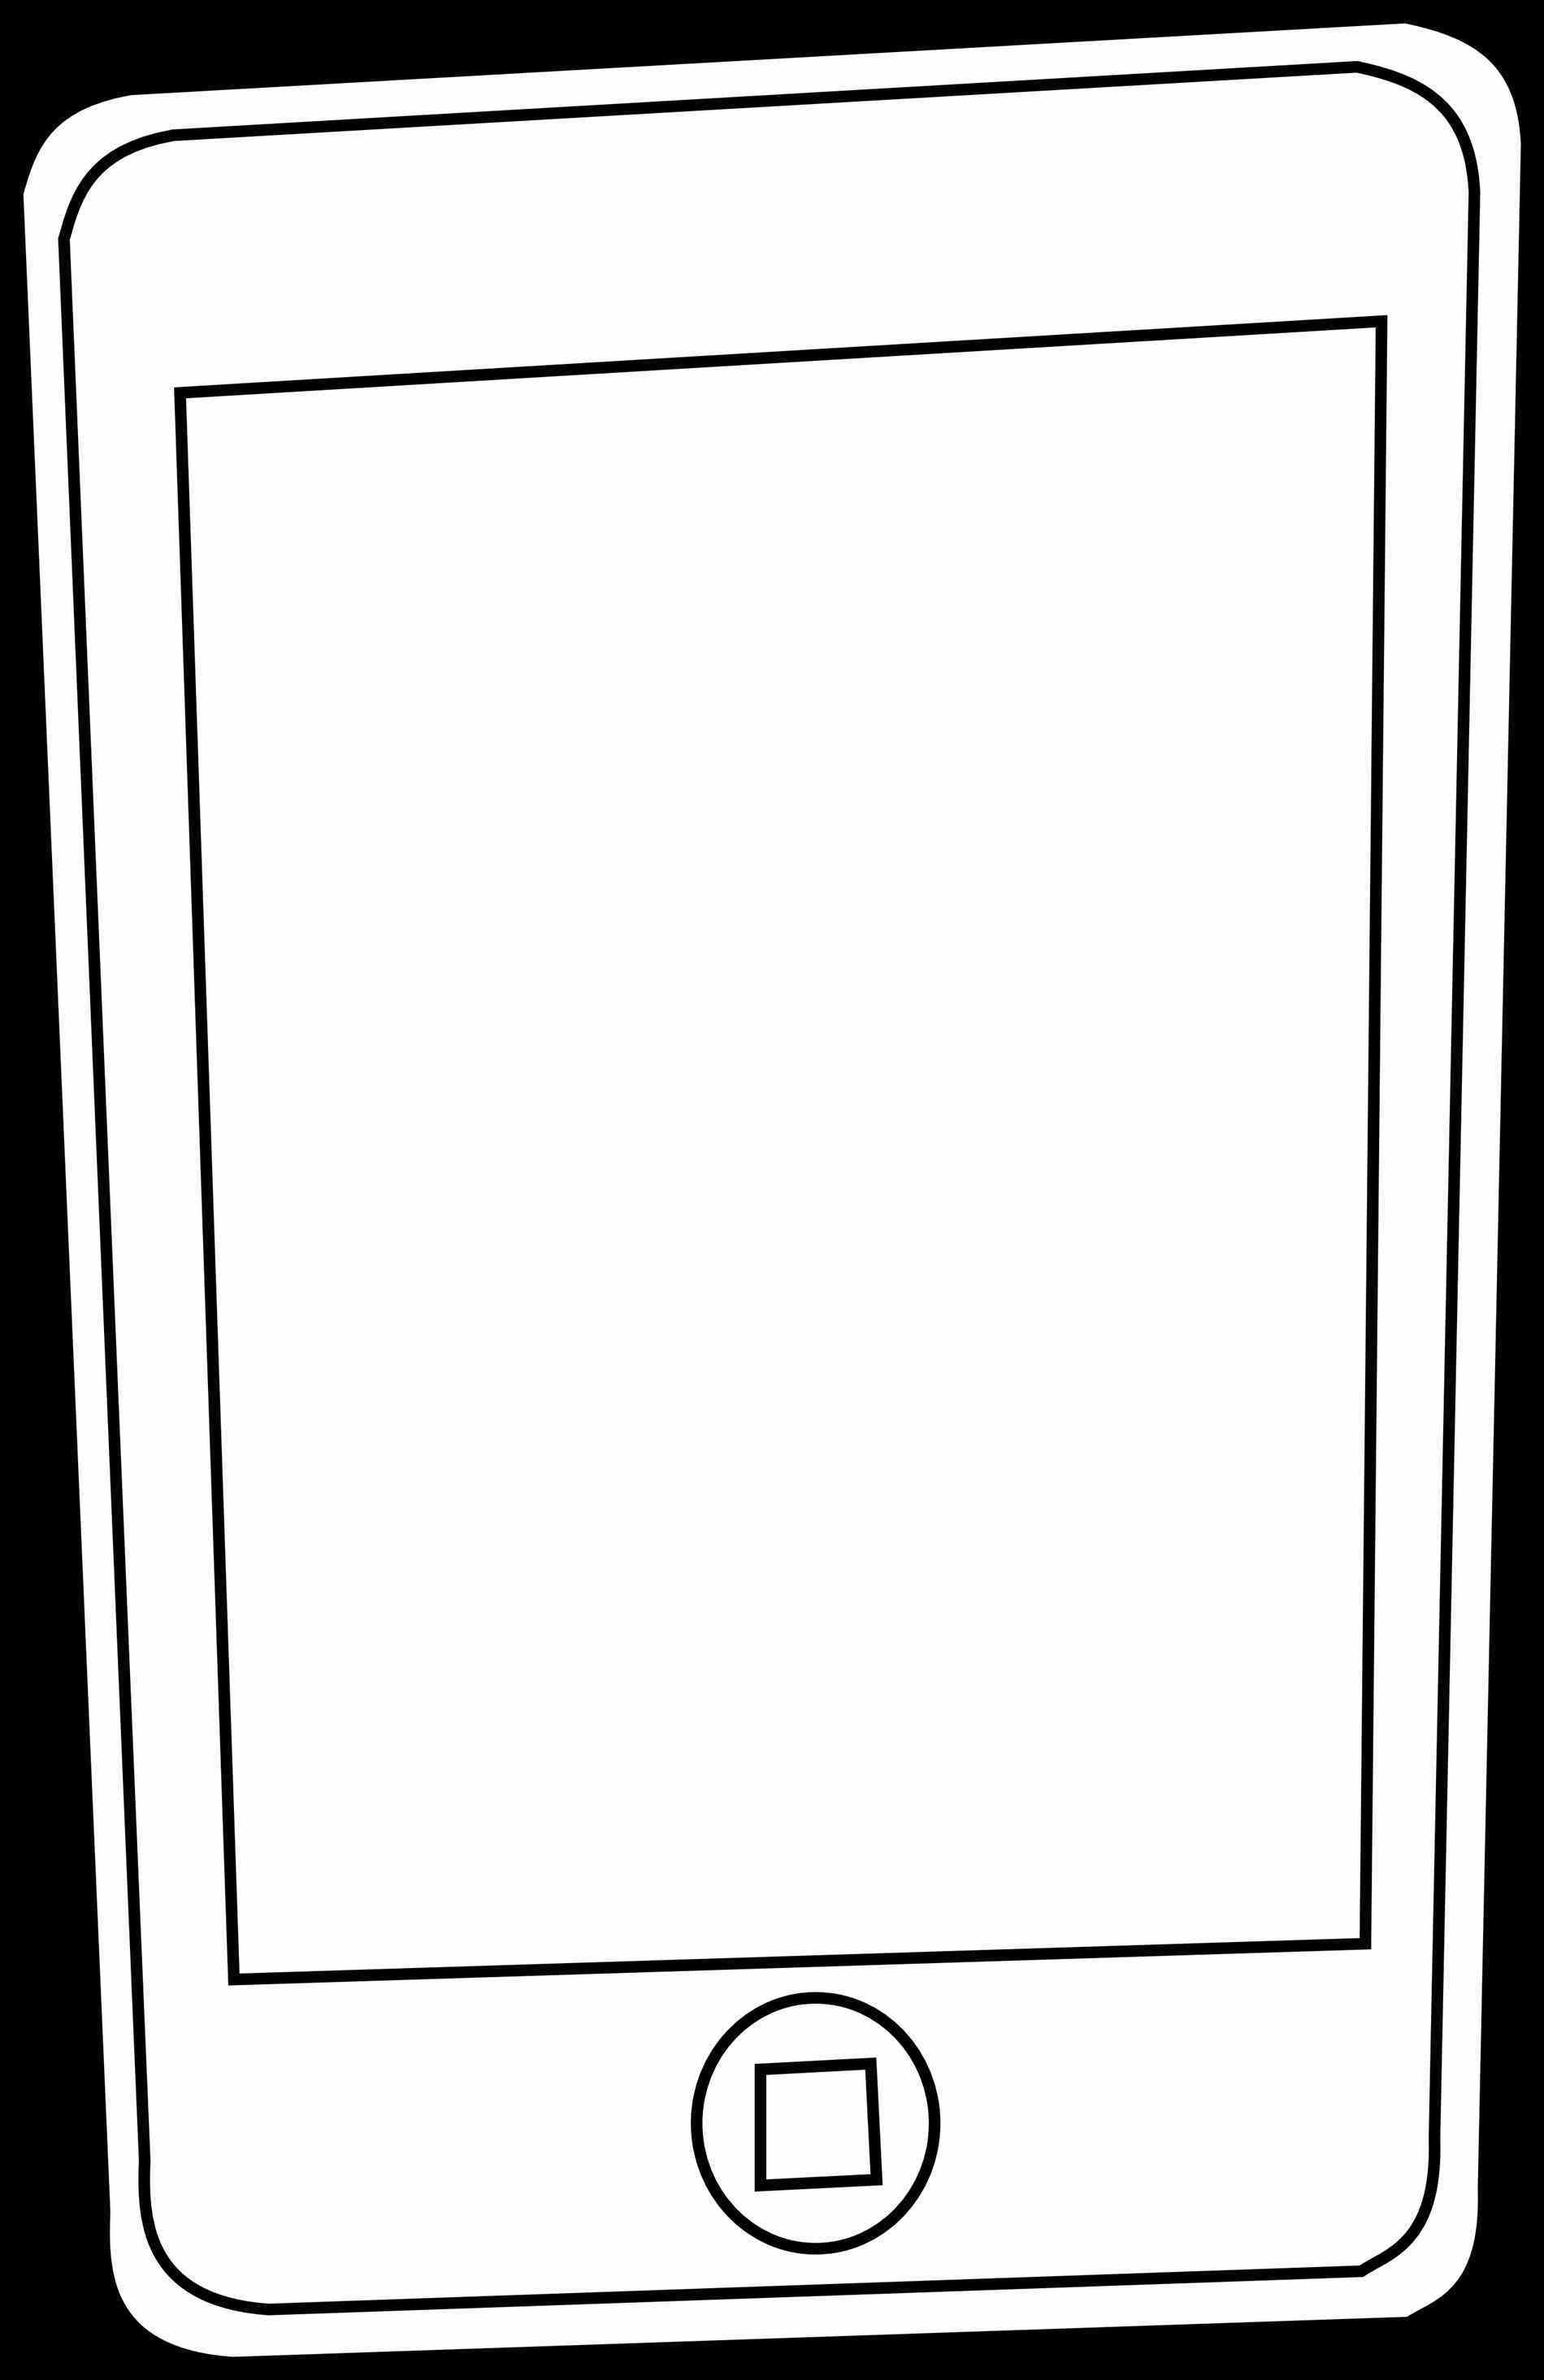 Cell clipart black and white. Phone panda free rhclipartpandacom